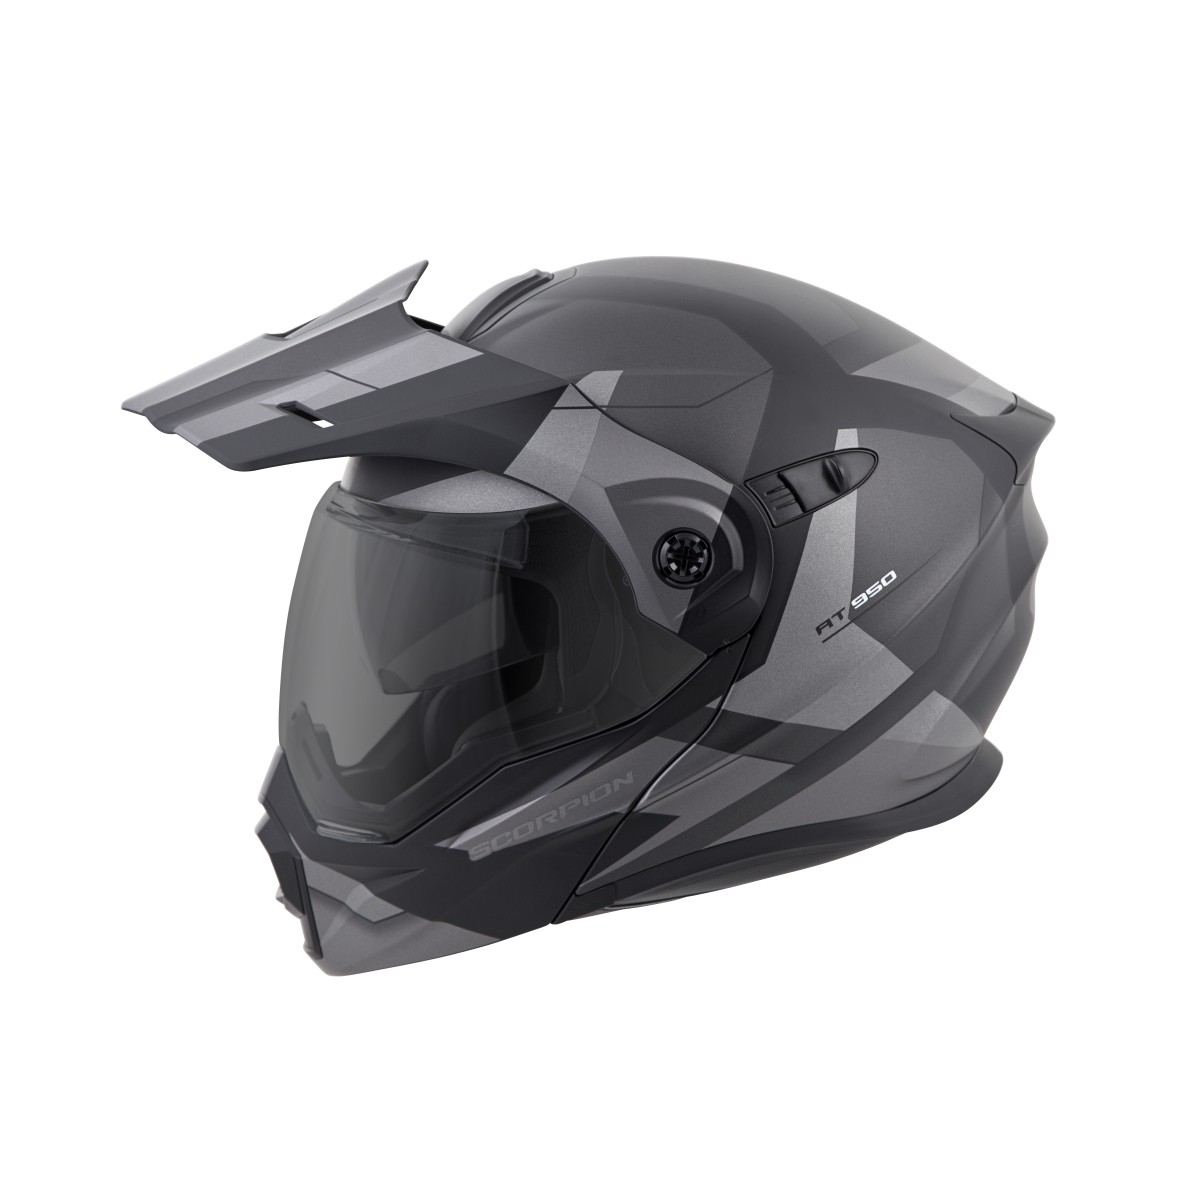 Scorpion Motorcycle EXO-AT950 NeoCon Helmet Choose Size & Color